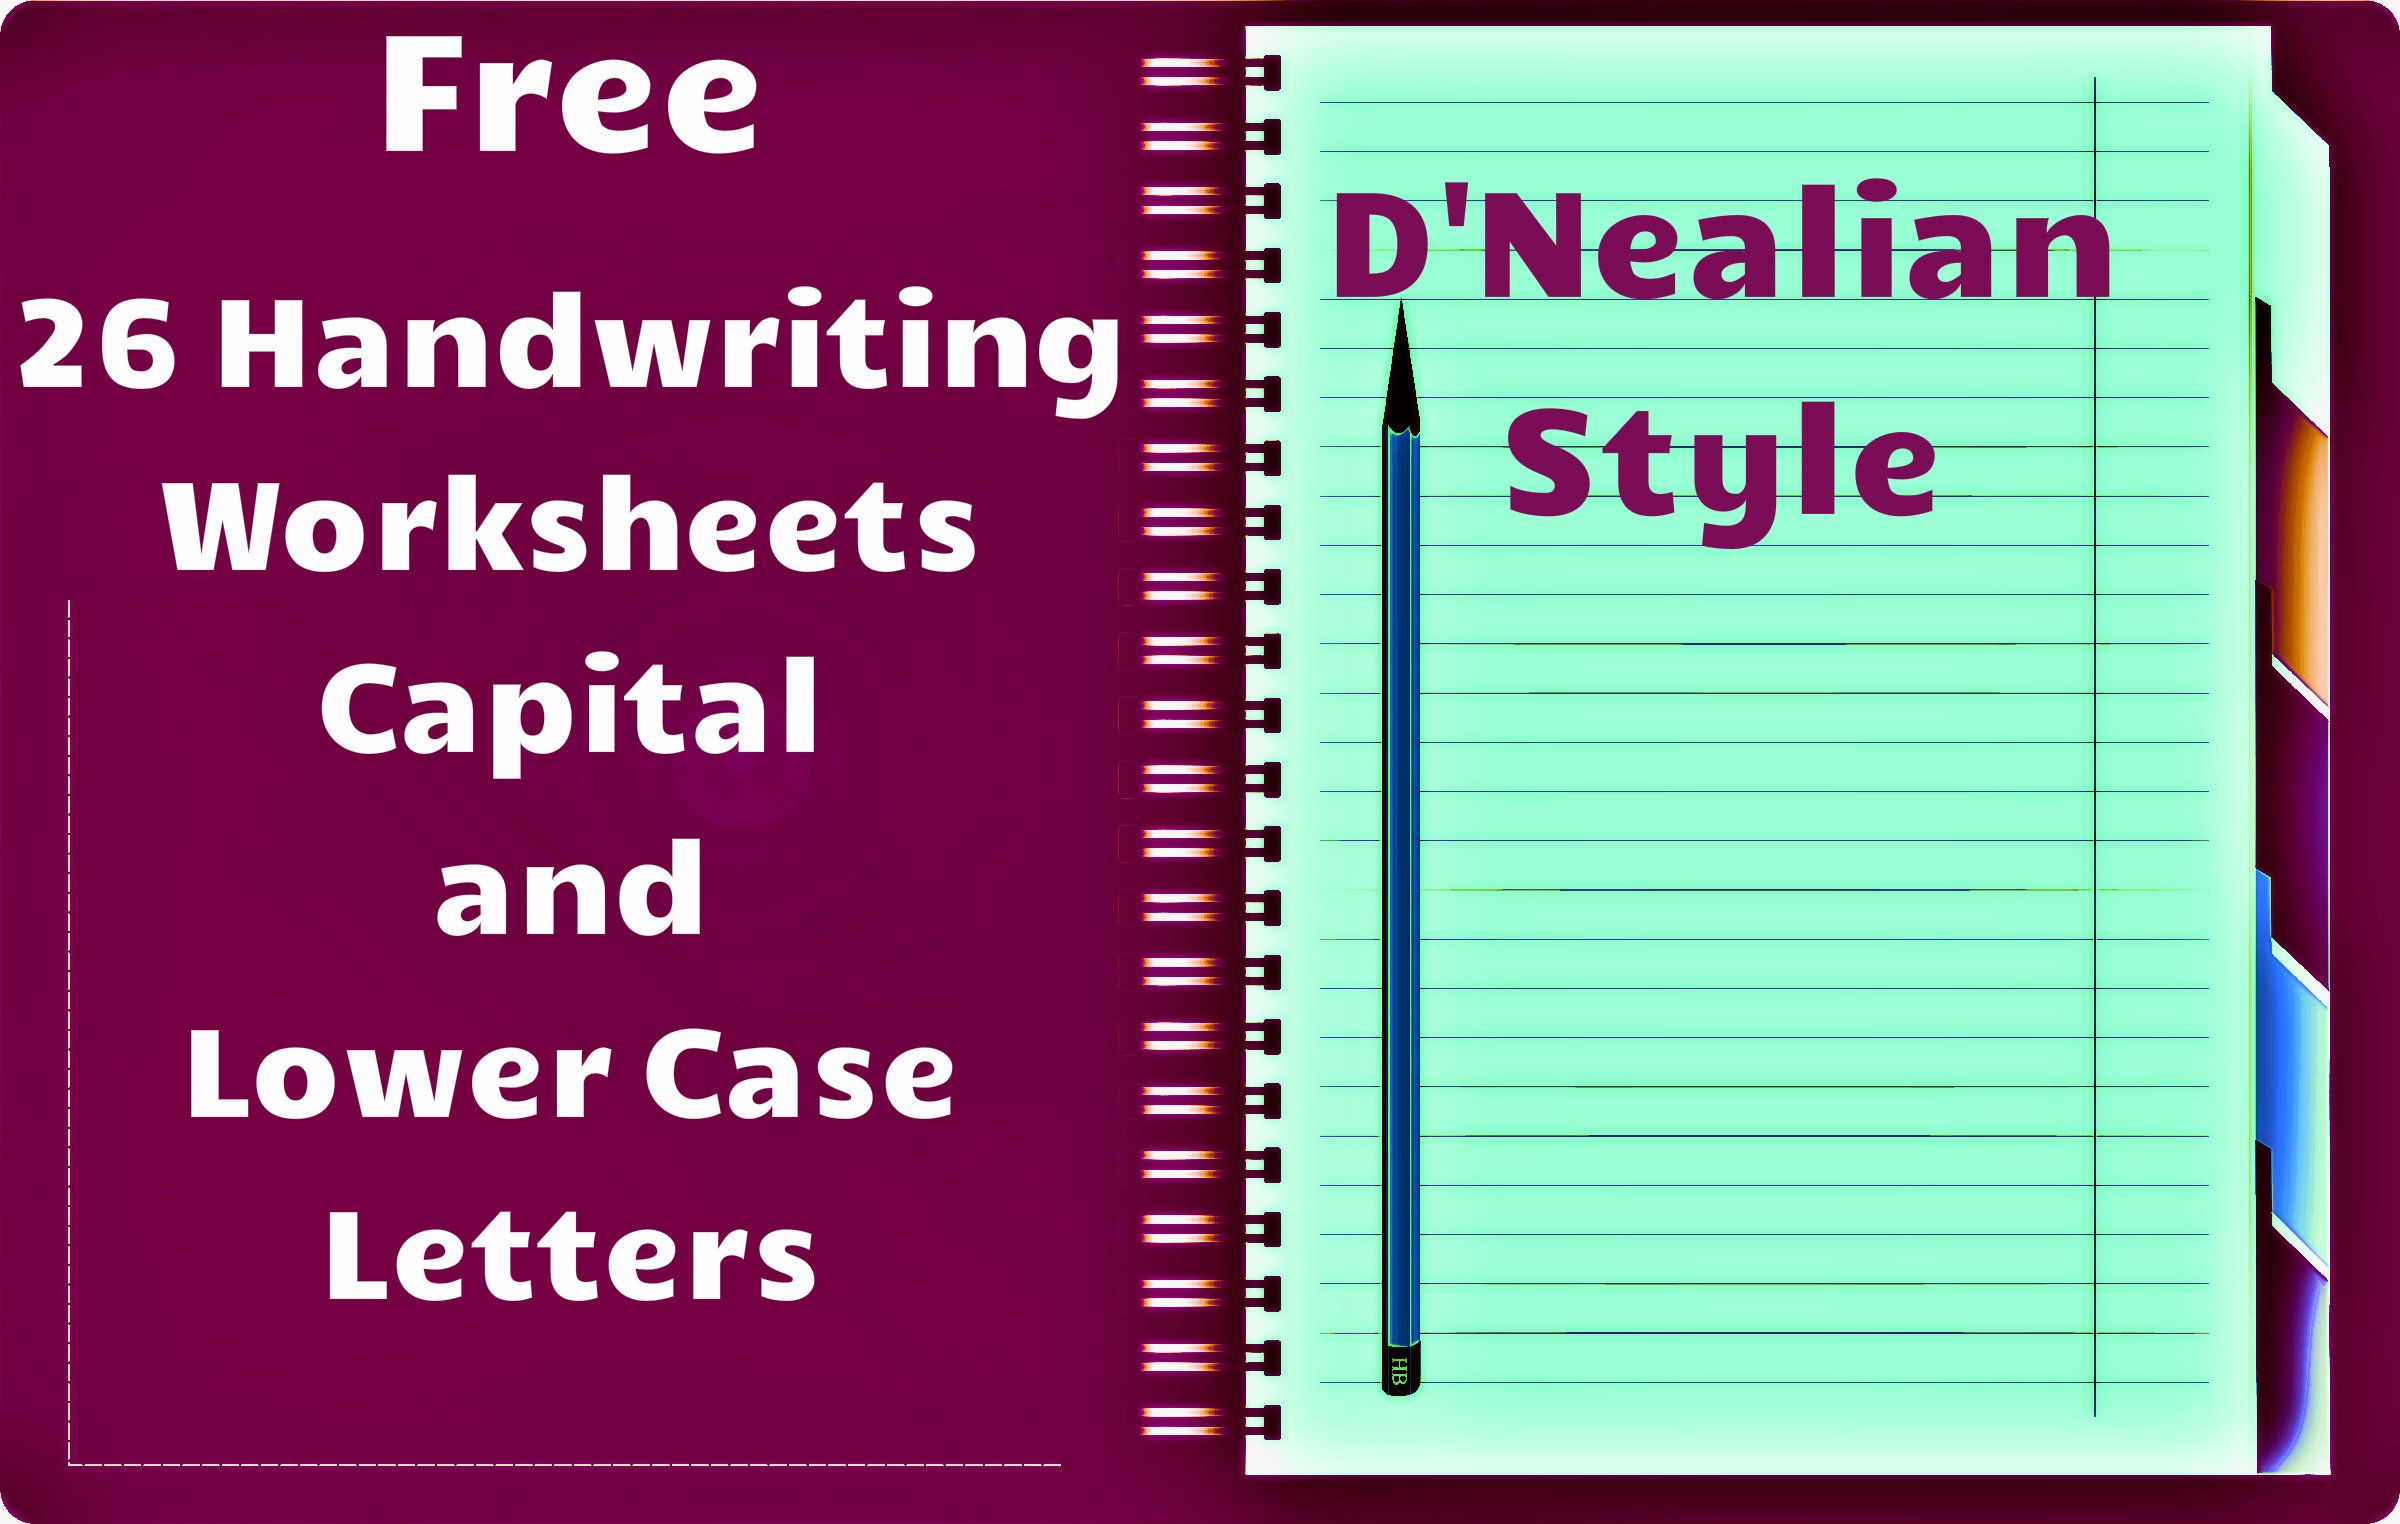 Printables D Nealian Handwriting Worksheets 1000 images about dnealian handwriting on pinterest hand writing alphabet tracing worksheets and practice work